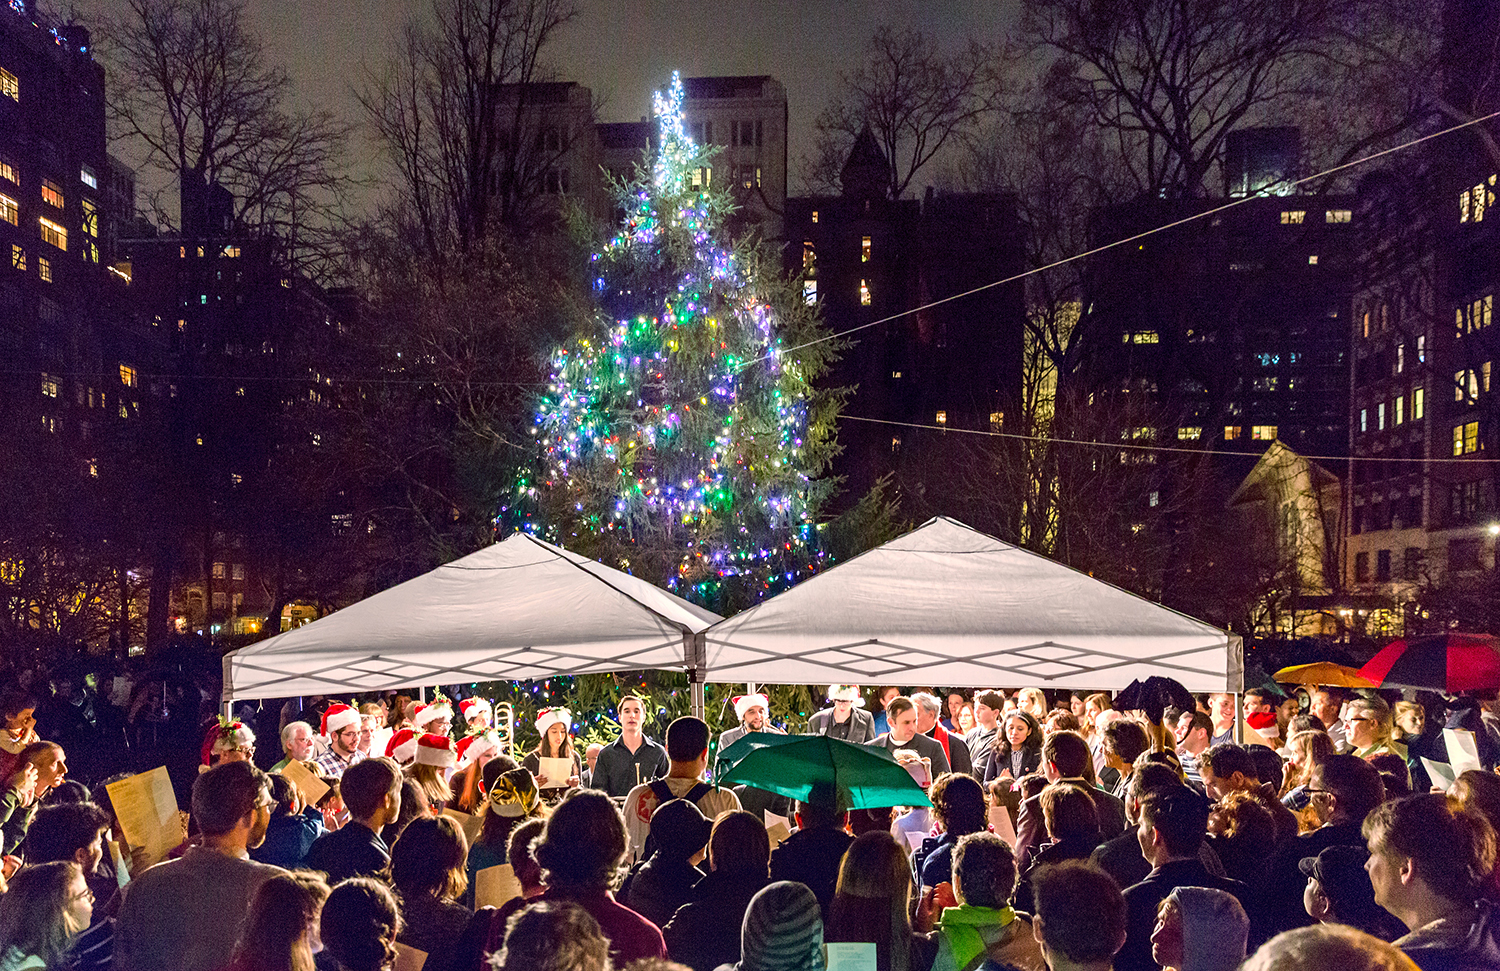 Lawrenceville, Nj + Restaurants Open Christmas Day 2020 Gramercy Park will open to the public on Christmas Eve for one